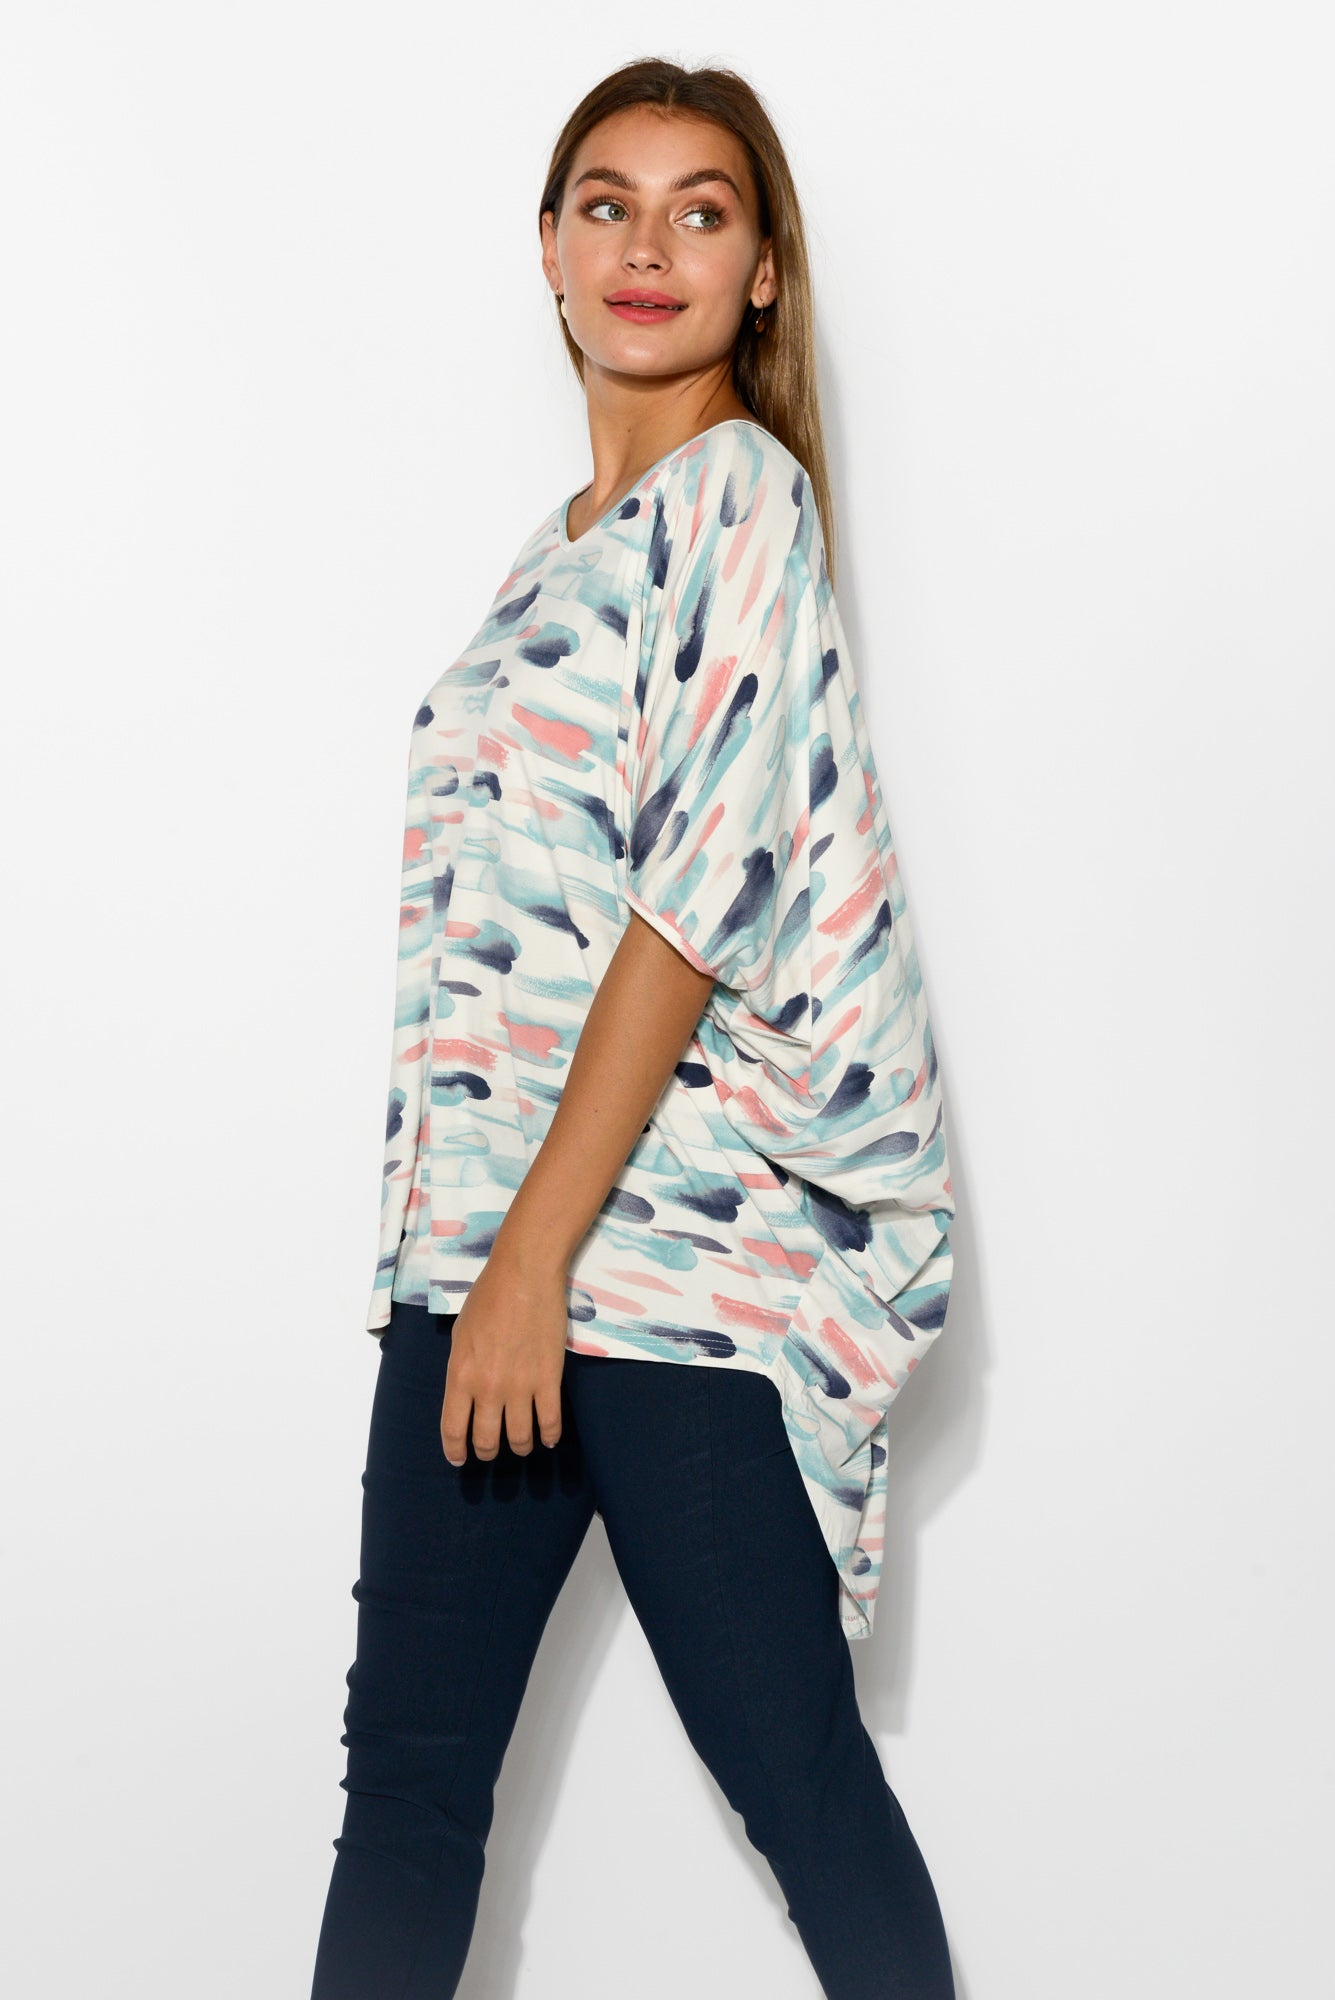 Emory Gelato Bamboo Hi Lo Batwing Top - Blue Bungalow